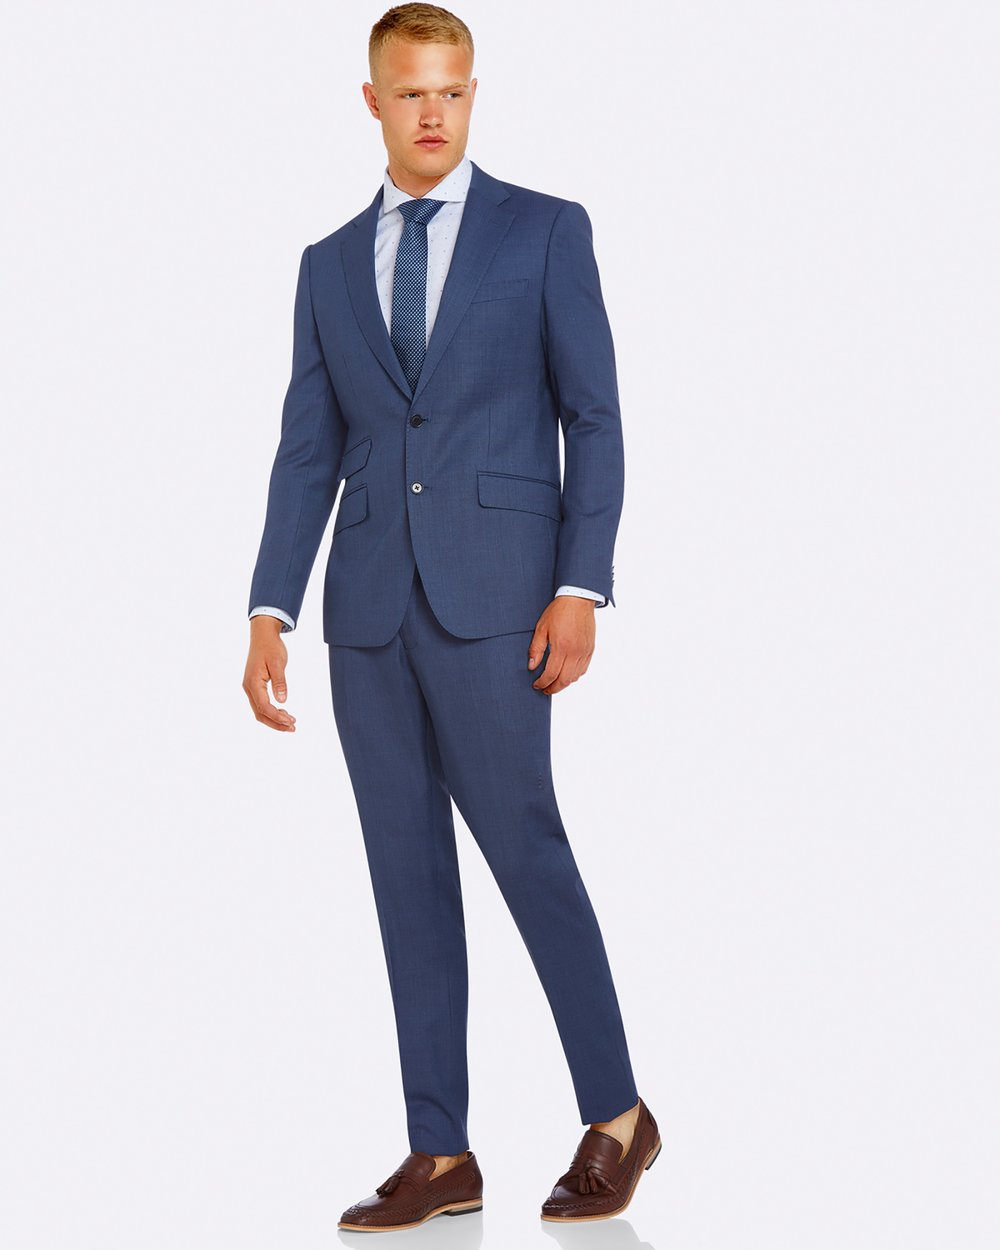 05a5072c399 Marlowe Wool Suit Set by Oxford Online